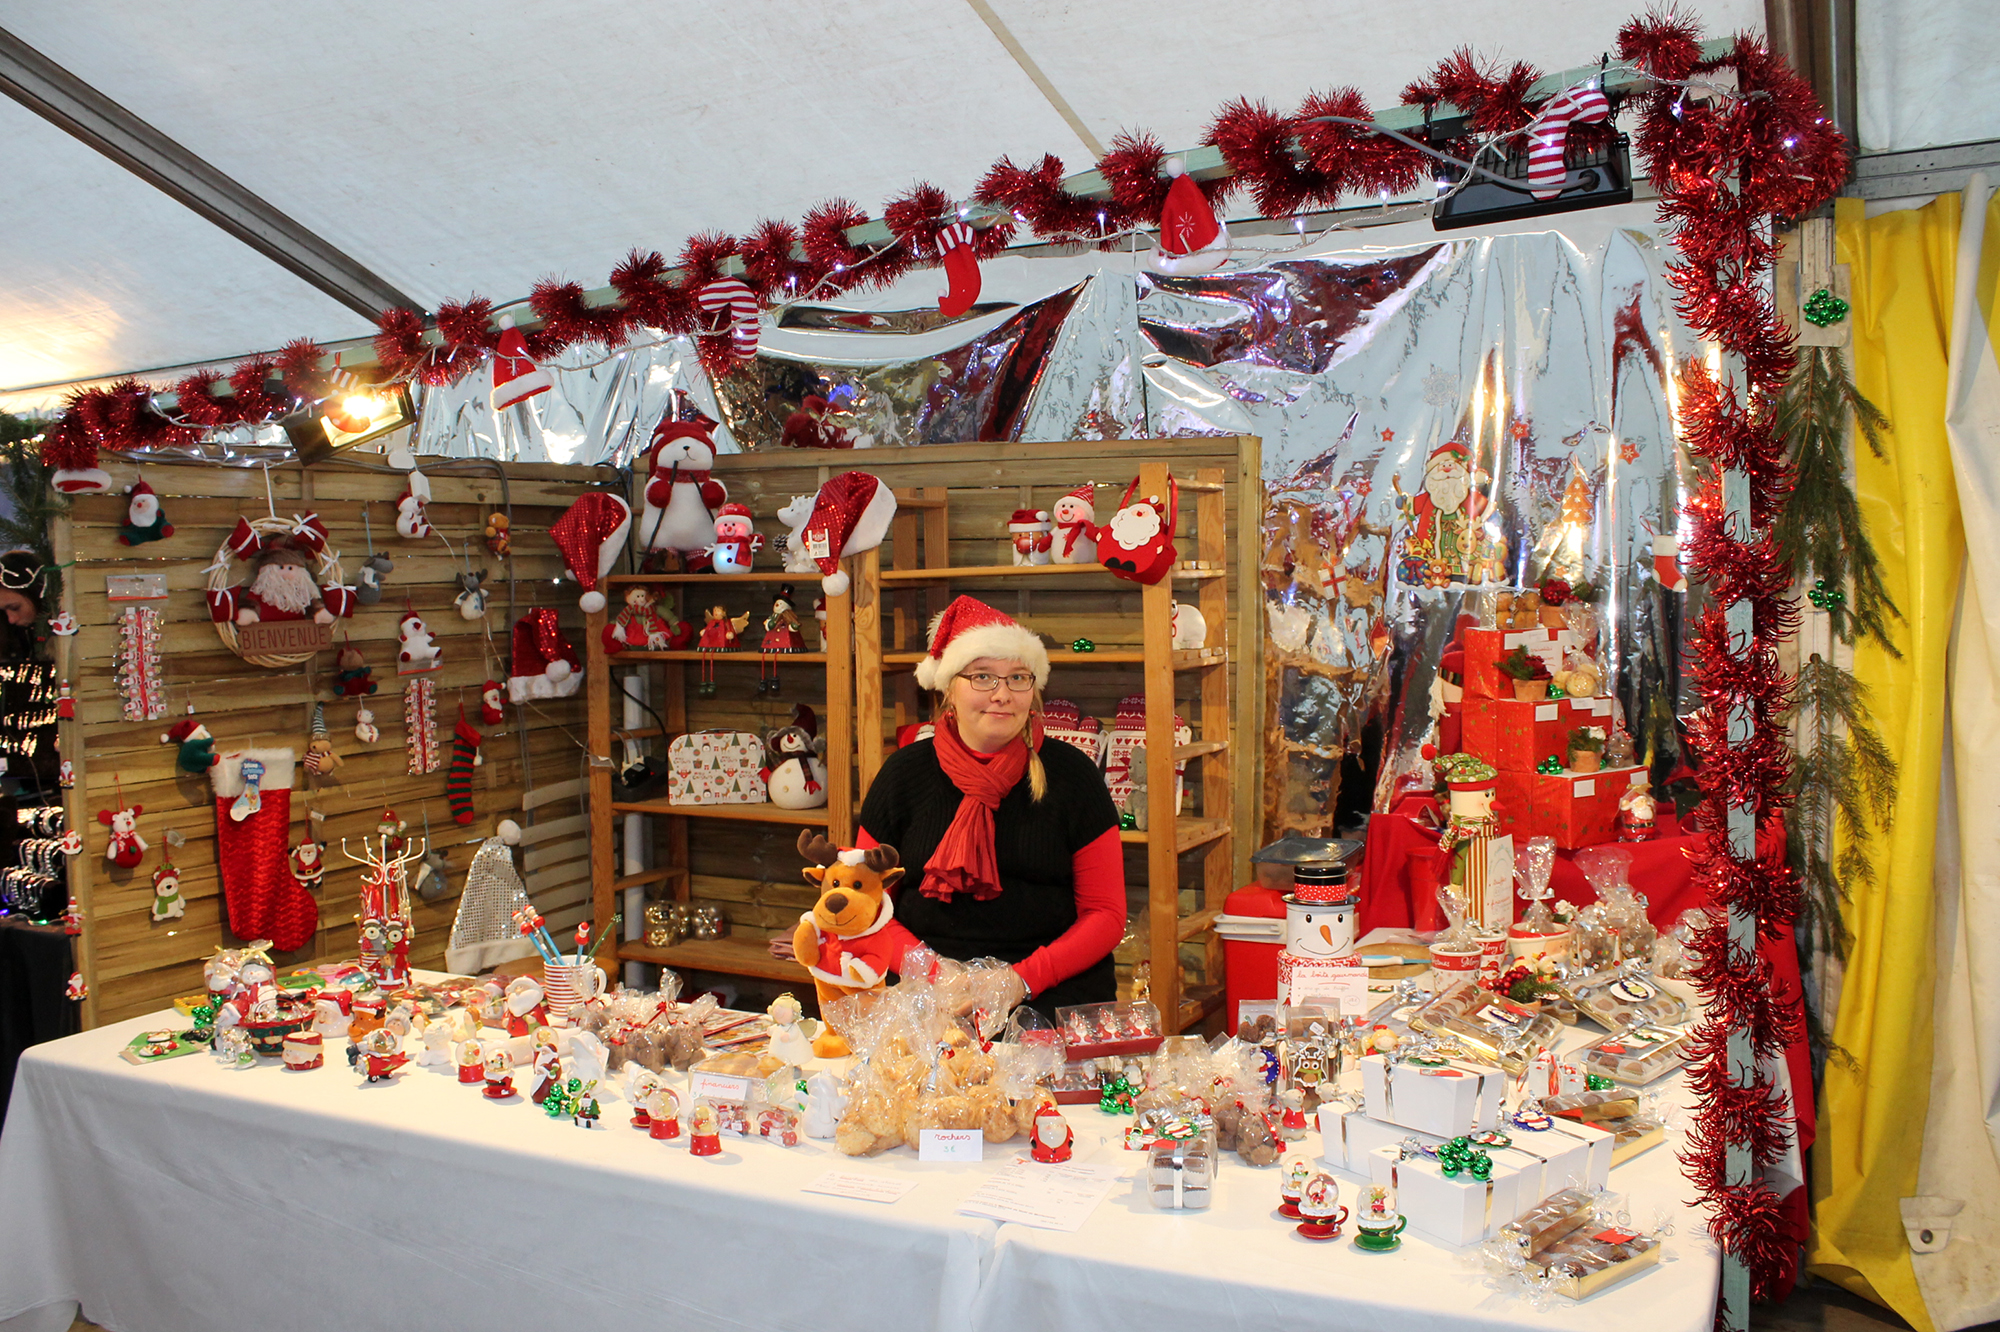 Discover the magical festive atmosphere at Morlanwelz Christmas market